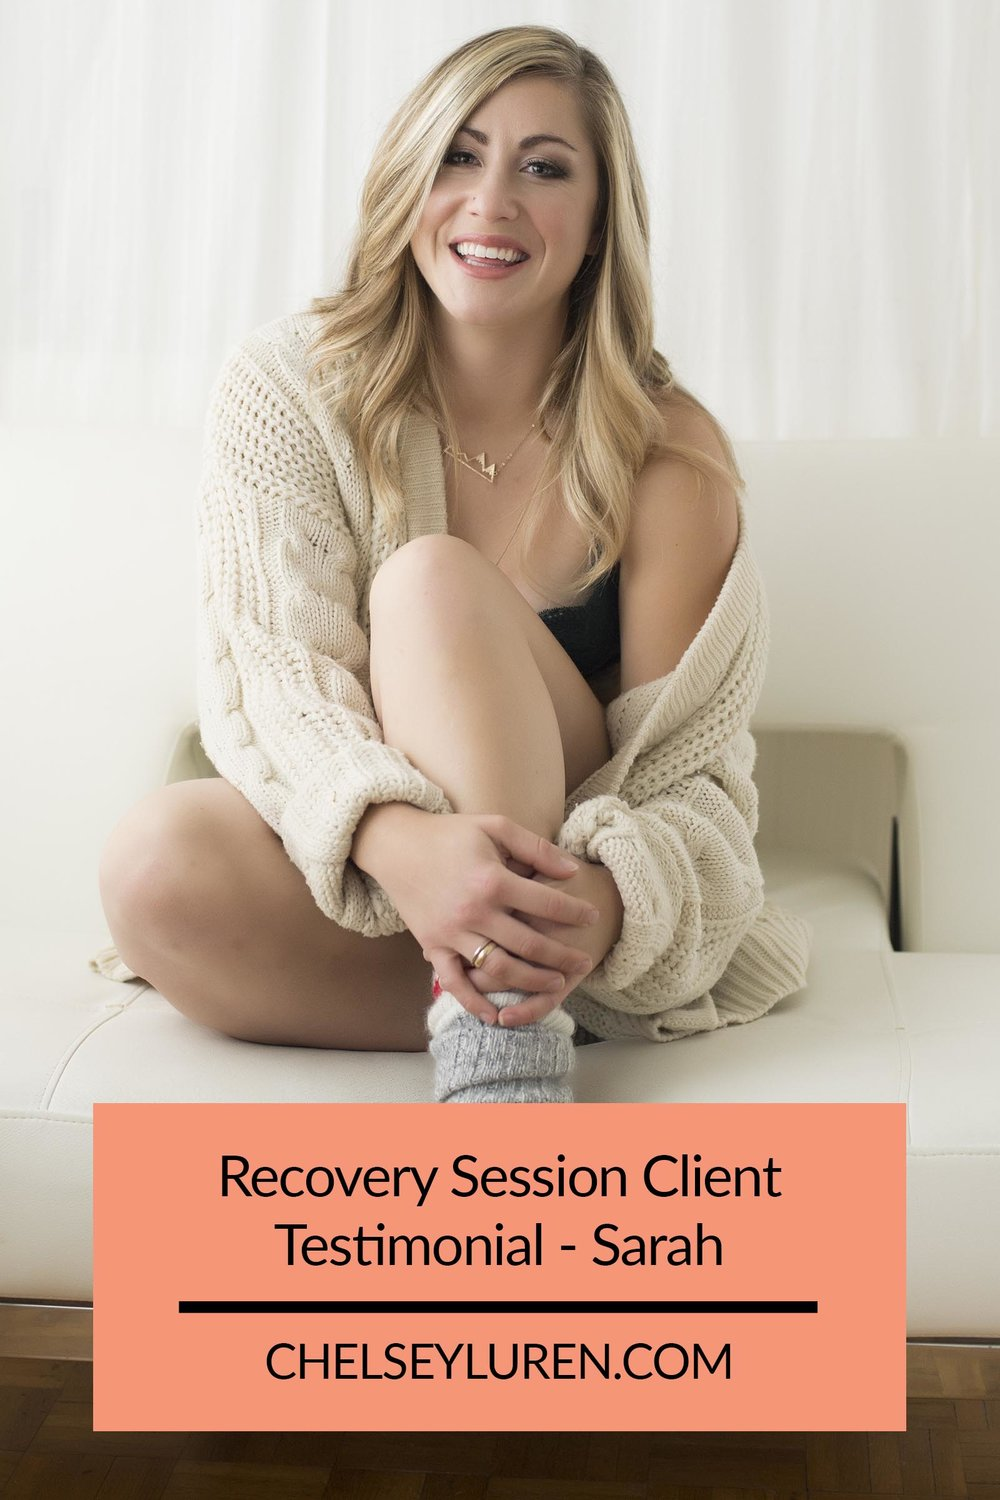 Chelsey Luren Portraits - Recovery Session Client Testimonial - Sarah.jpg